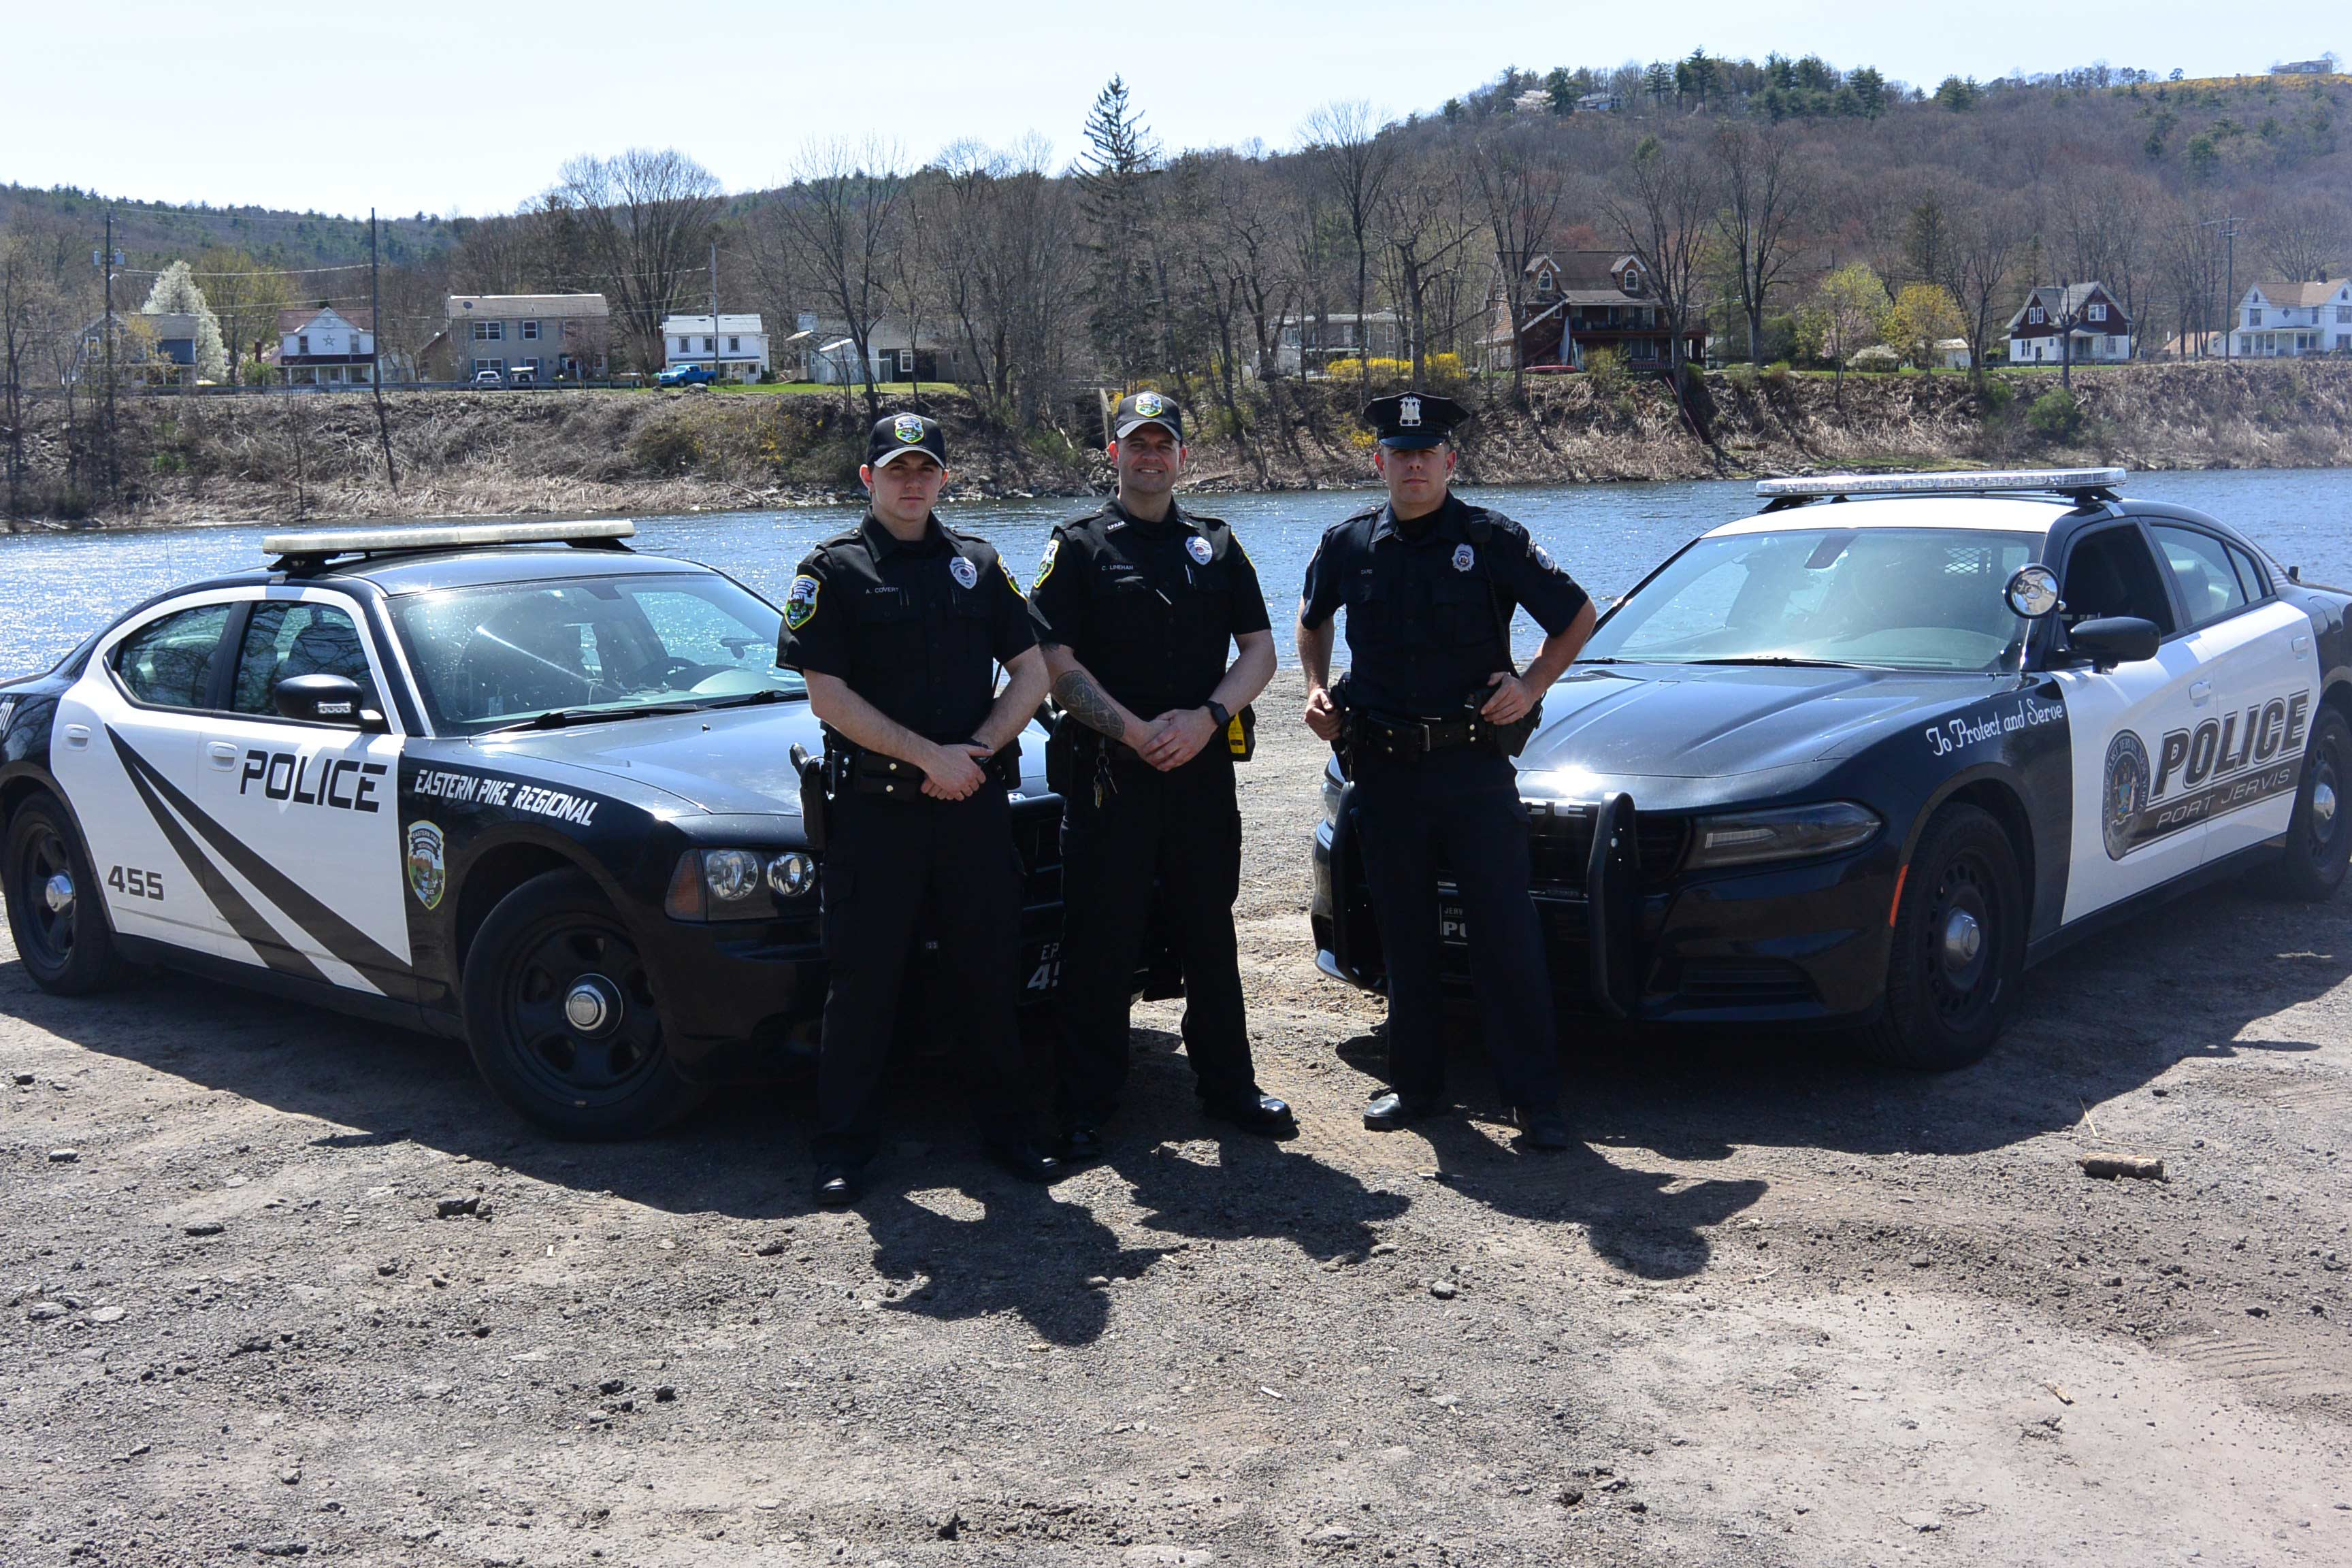 Police Officers and Cars